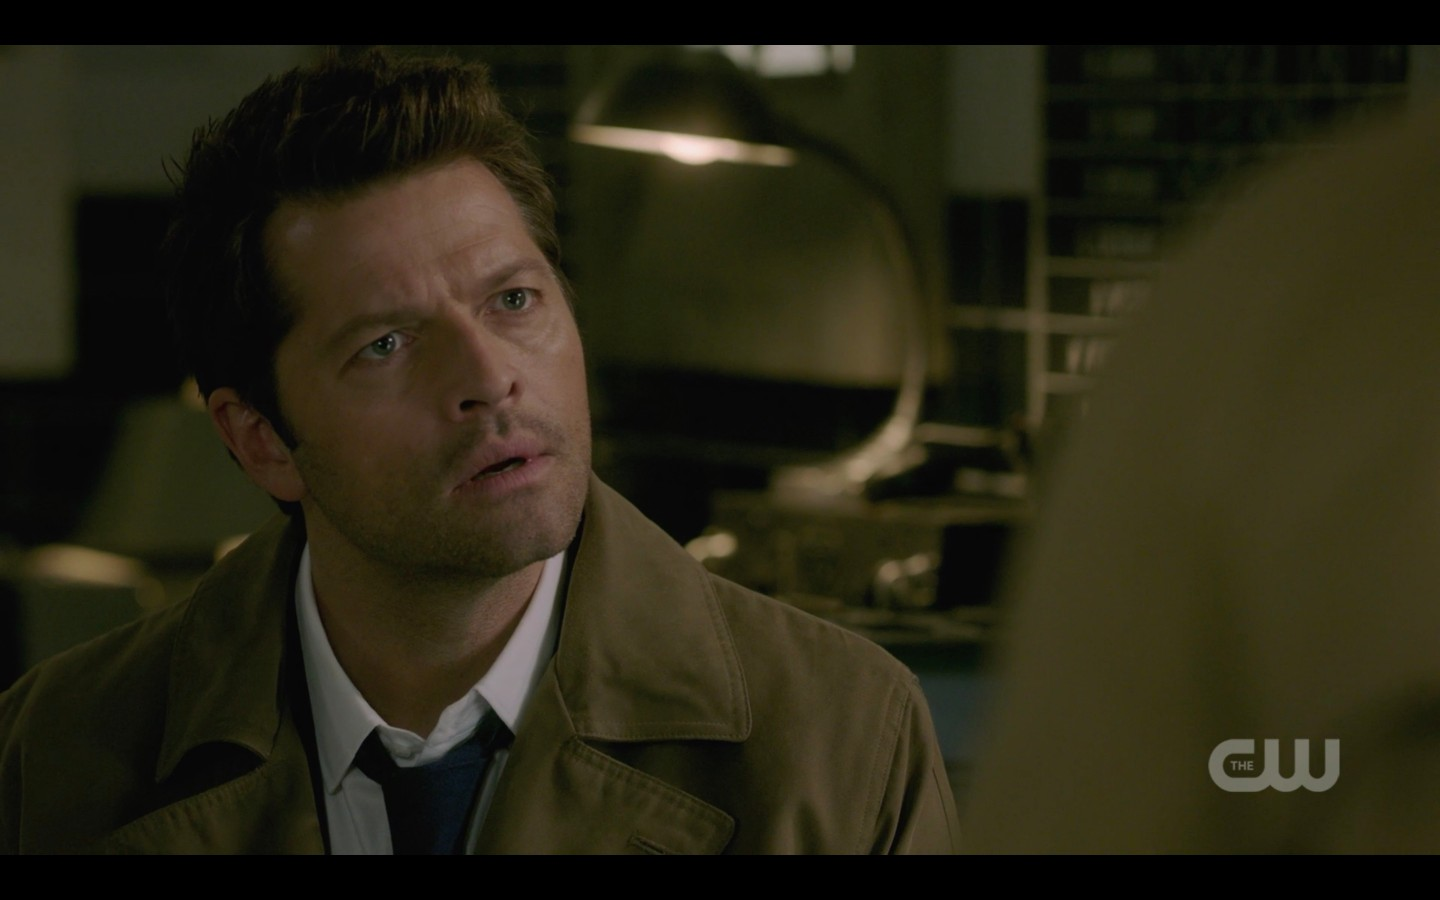 castiel getting no with jack supernatural